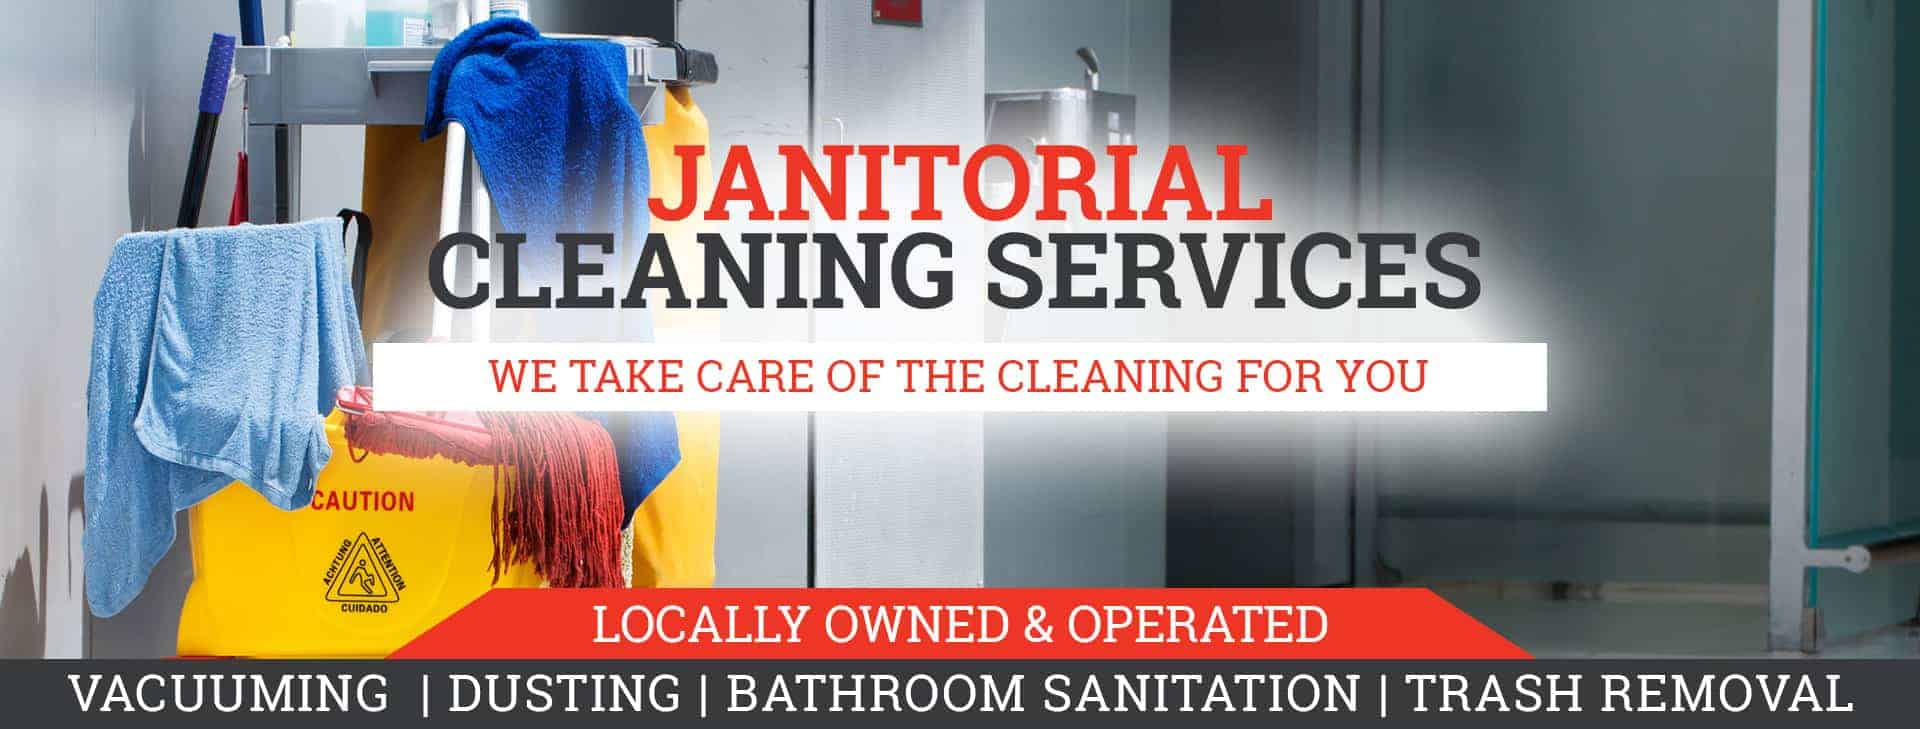 Top Janitorial Cleaning Service